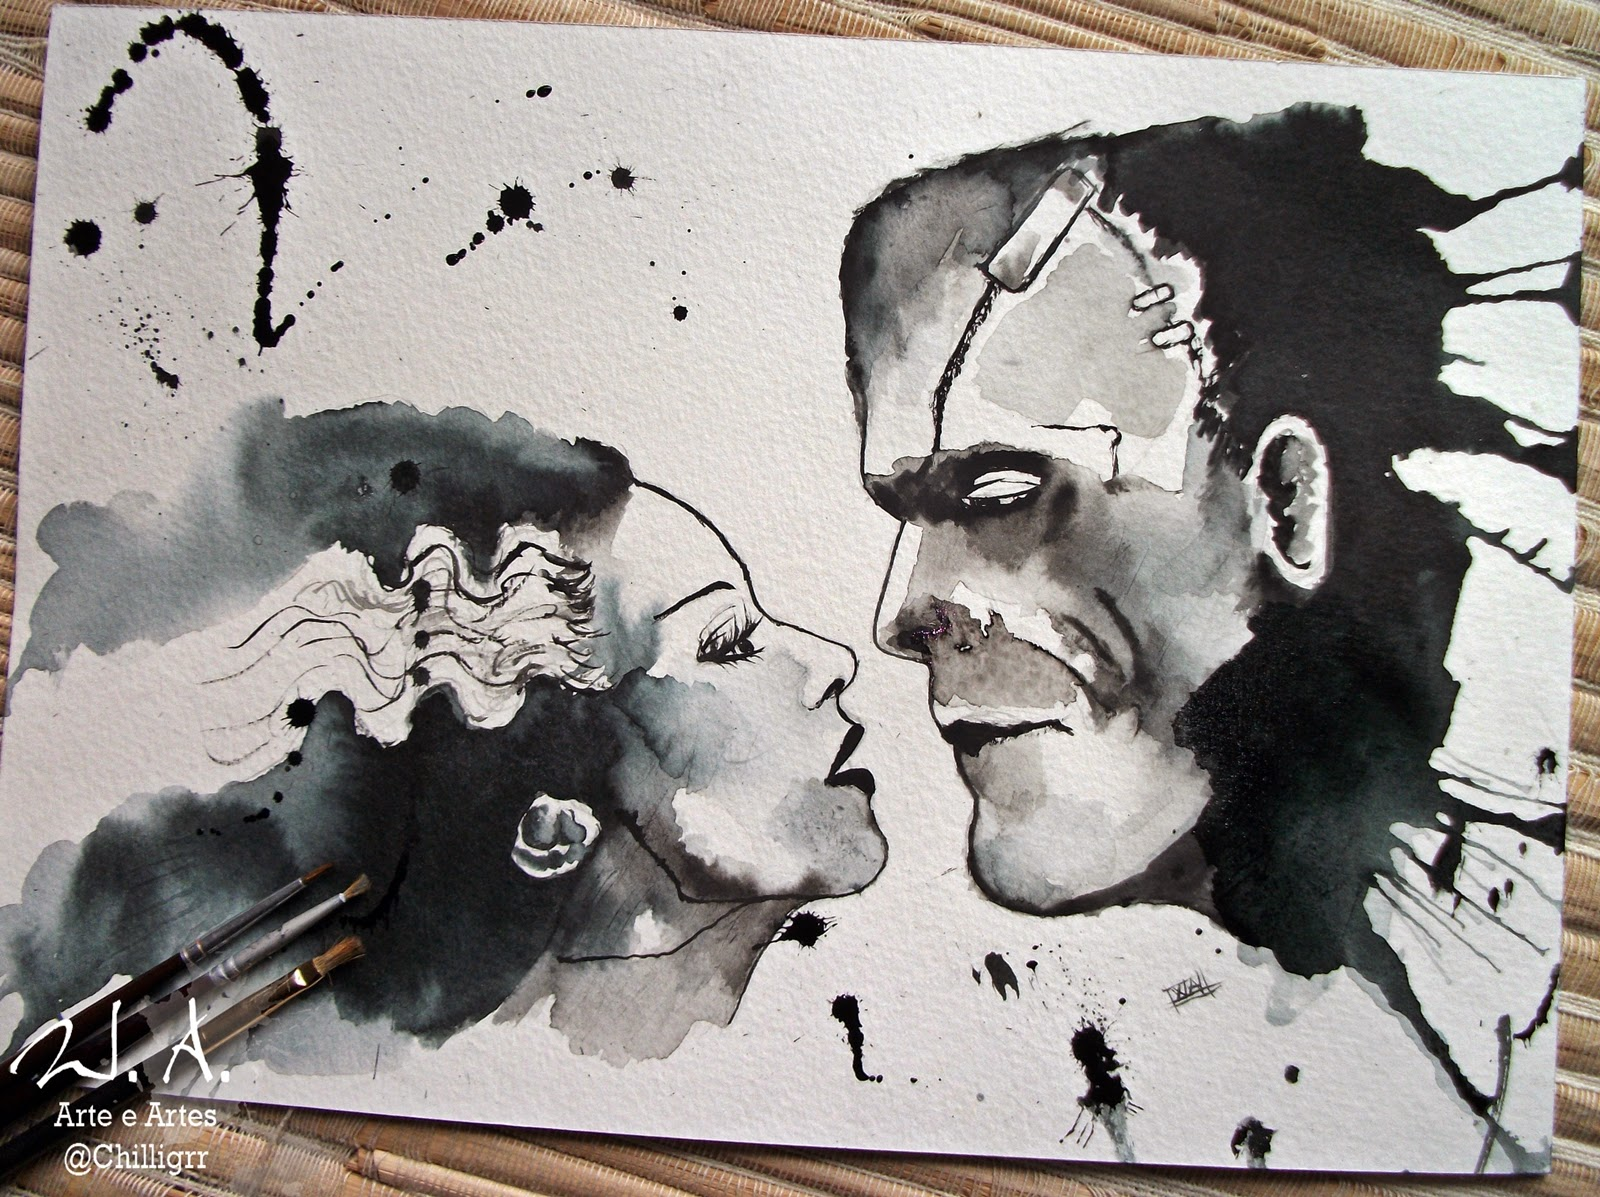 frankenstein, mr e mrs frankenstein, bride of frankenstein